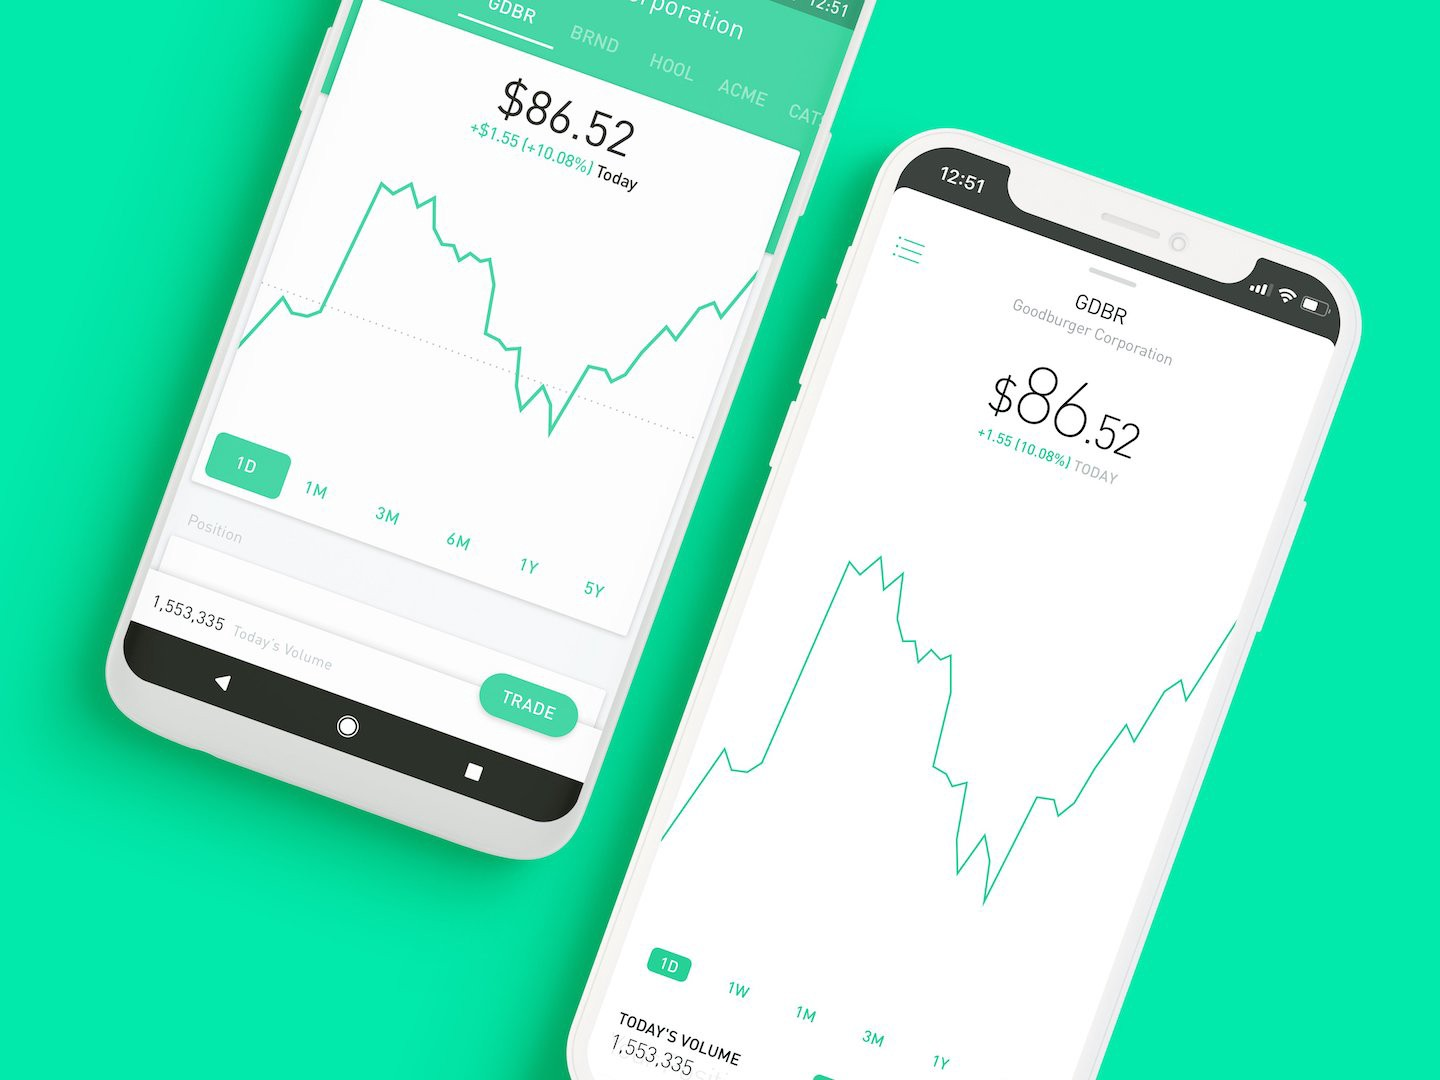 Commission-Free Investing Robinhood Sales Best Buy